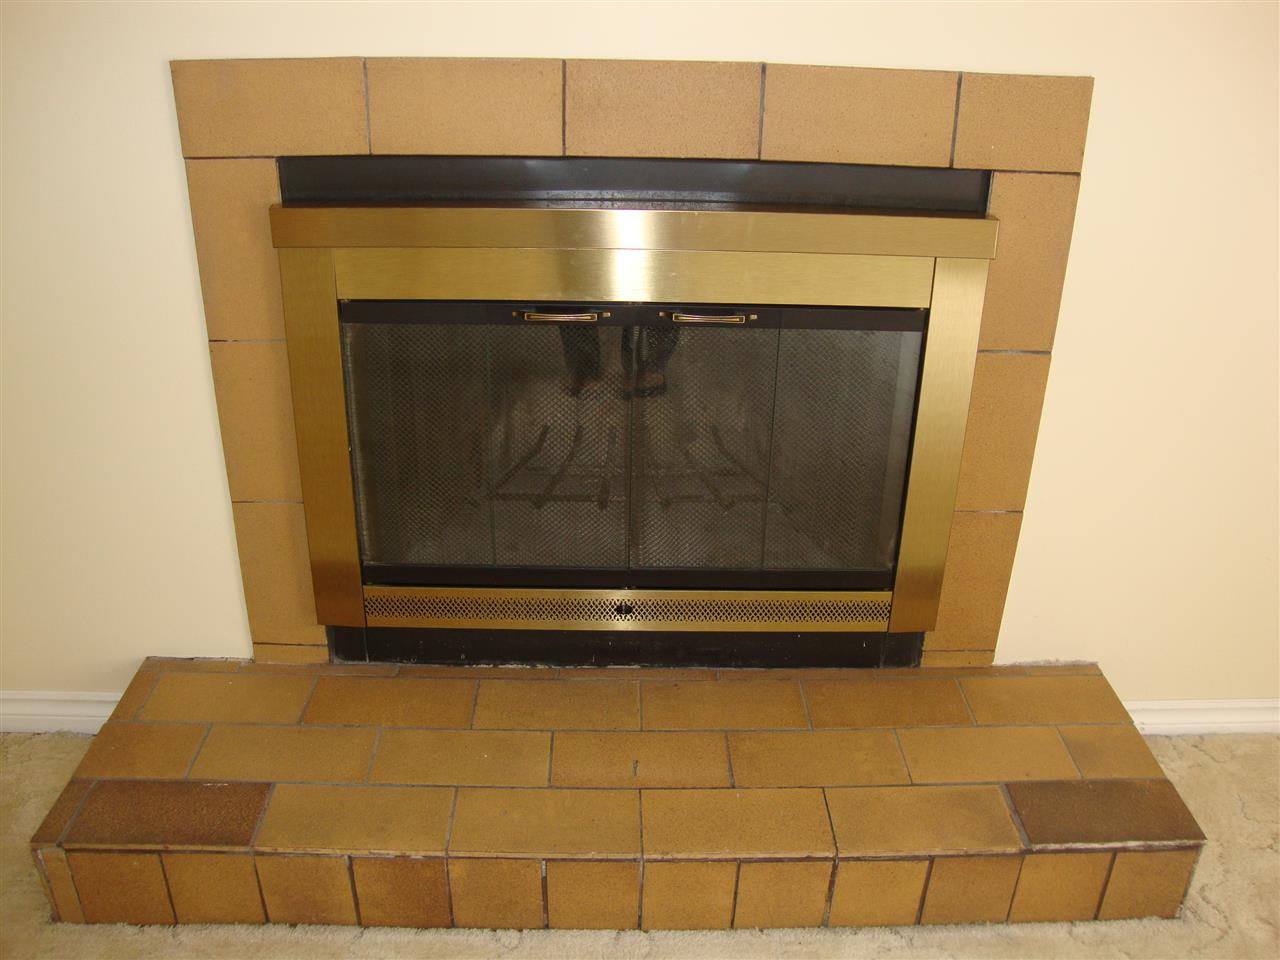 Wood burning fireplace in living room has tile surround and glass door.